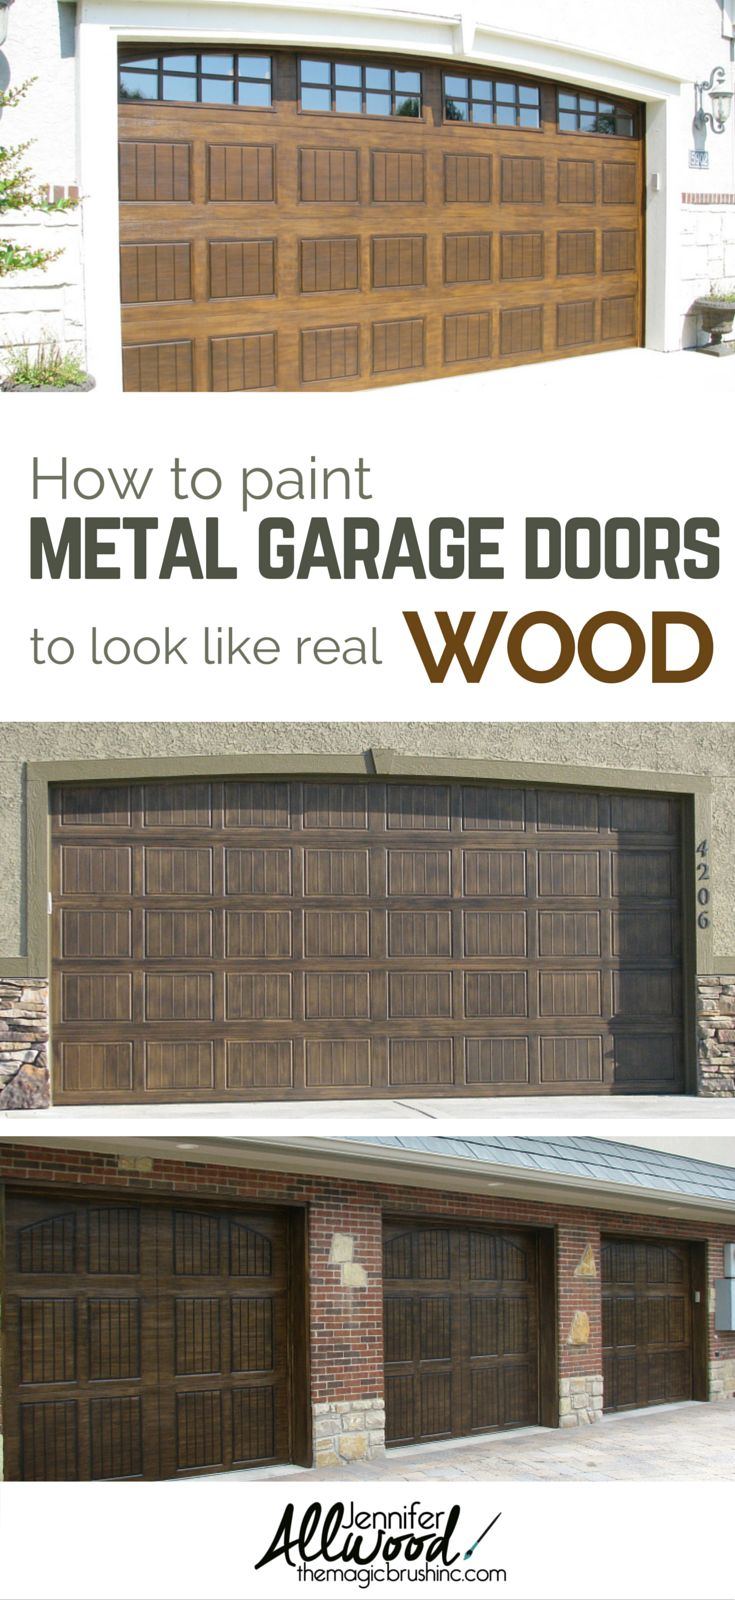 Wood garage door plans woodworking projects plans for Wood looking garage doors